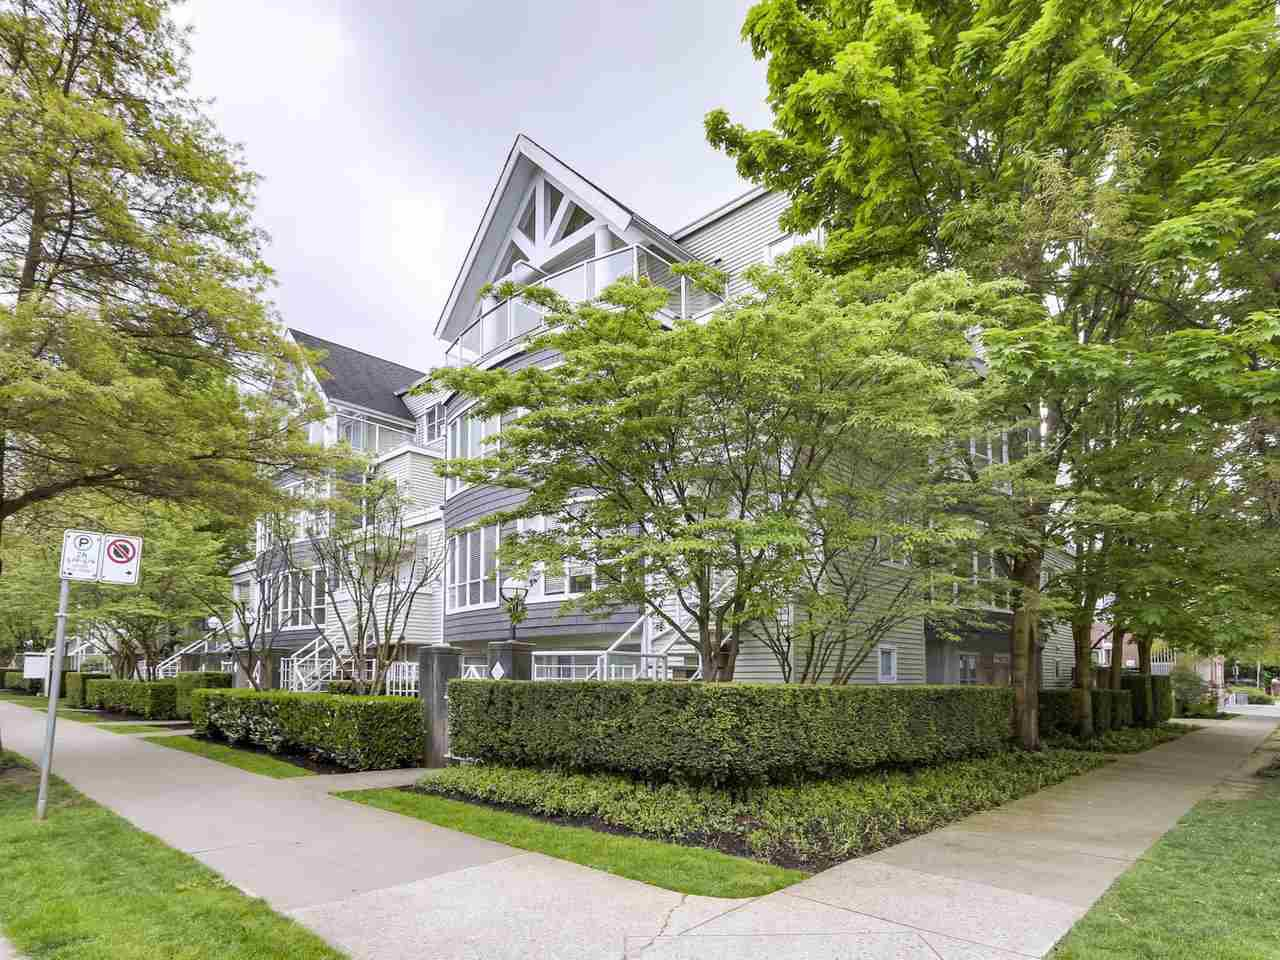 Main Photo: 28 788 W 15TH AVENUE in Vancouver: Fairview VW Townhouse for sale (Vancouver West)  : MLS®# R2296604